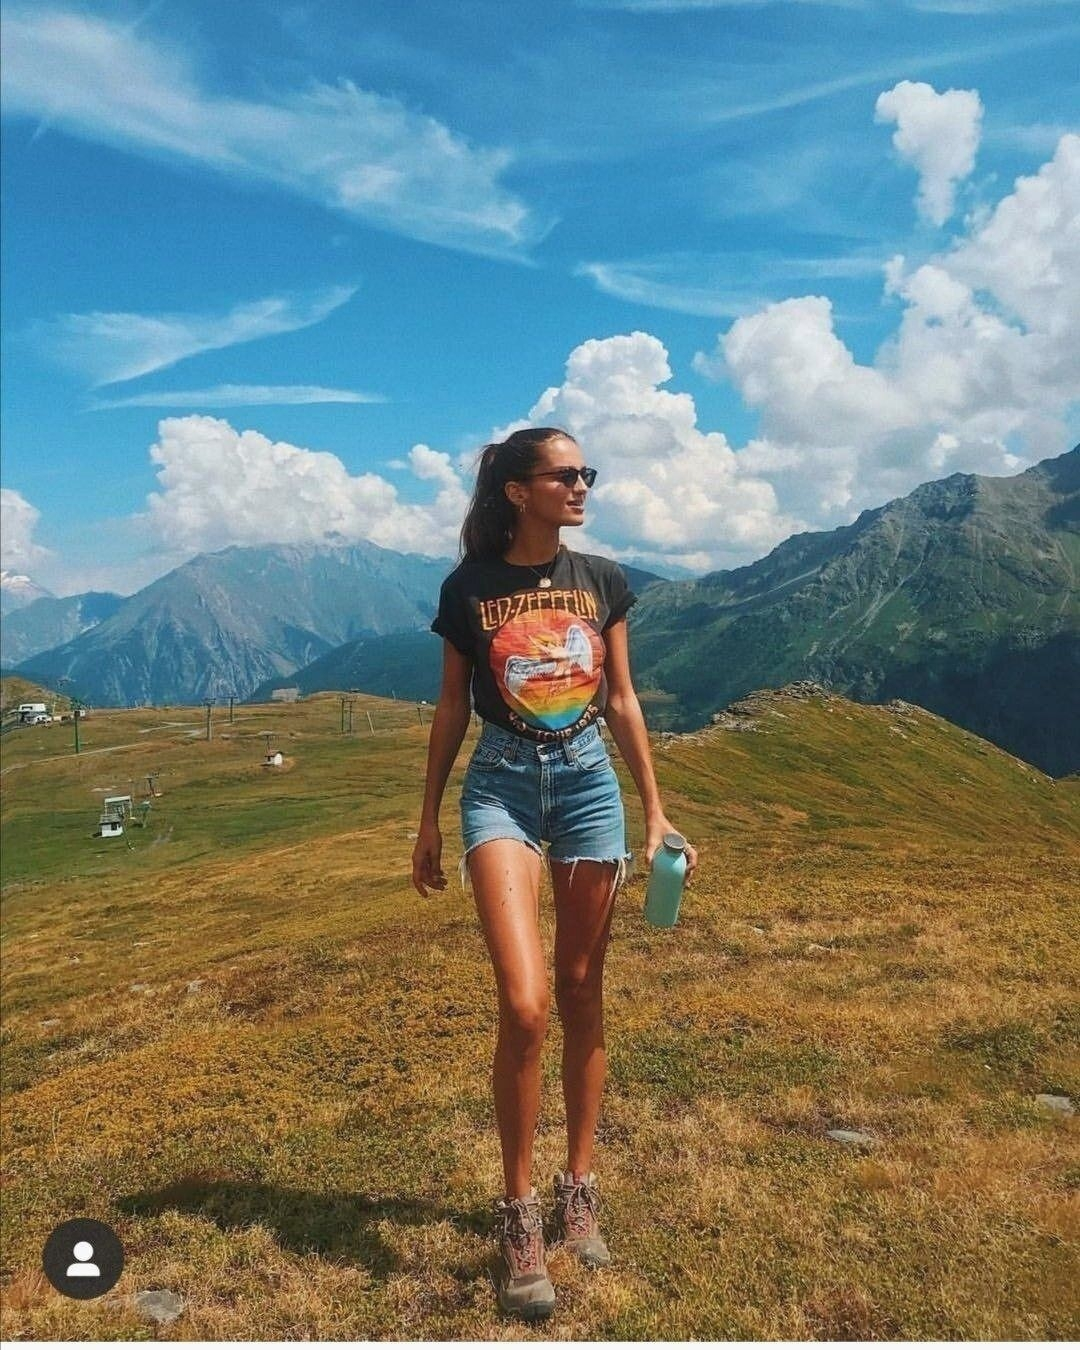 denim shorts outfit in 2020 camping outfits for women